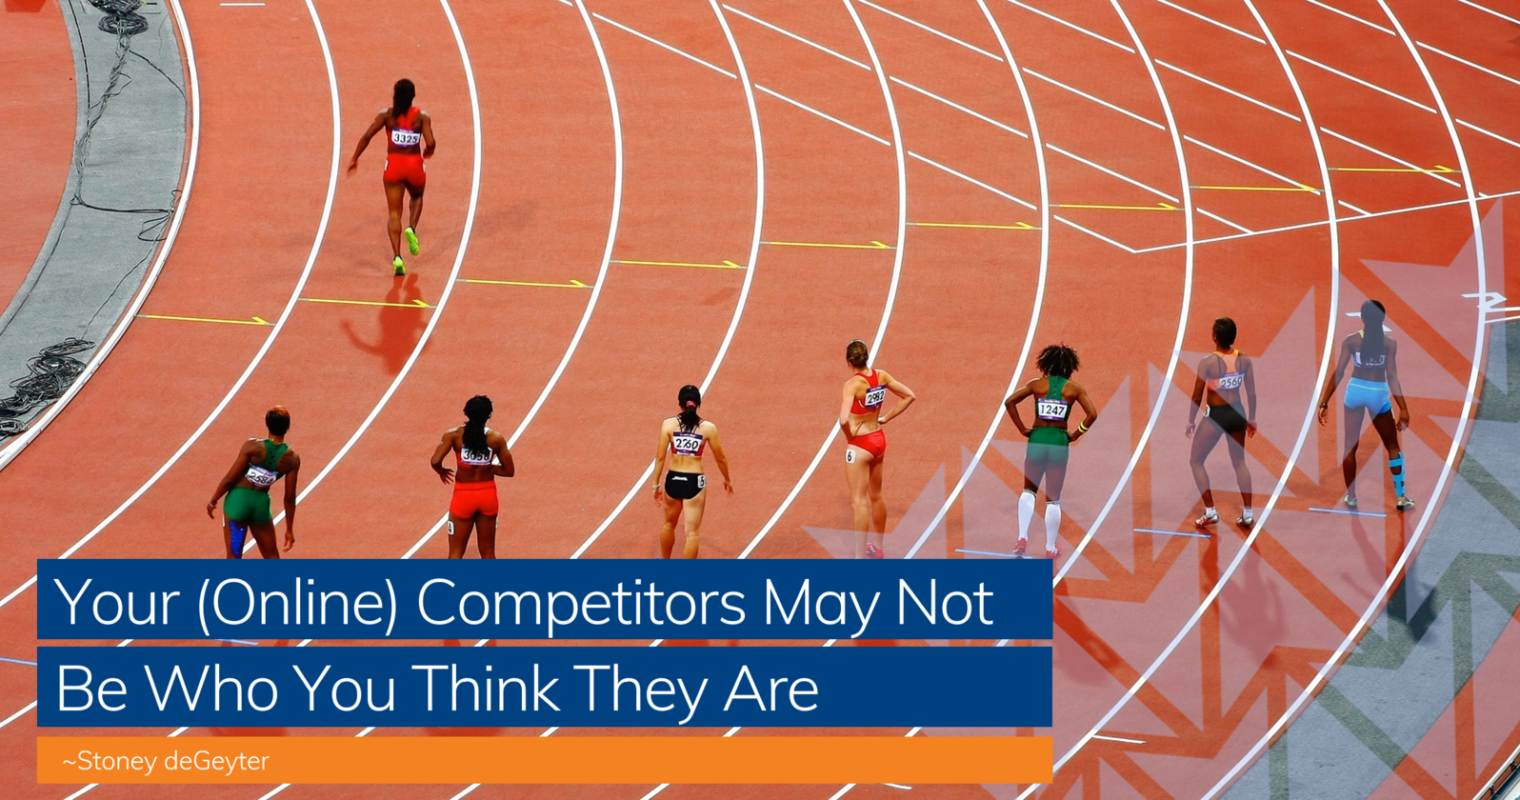 Your (Online) Competitors May Not Be Who You Think They Are